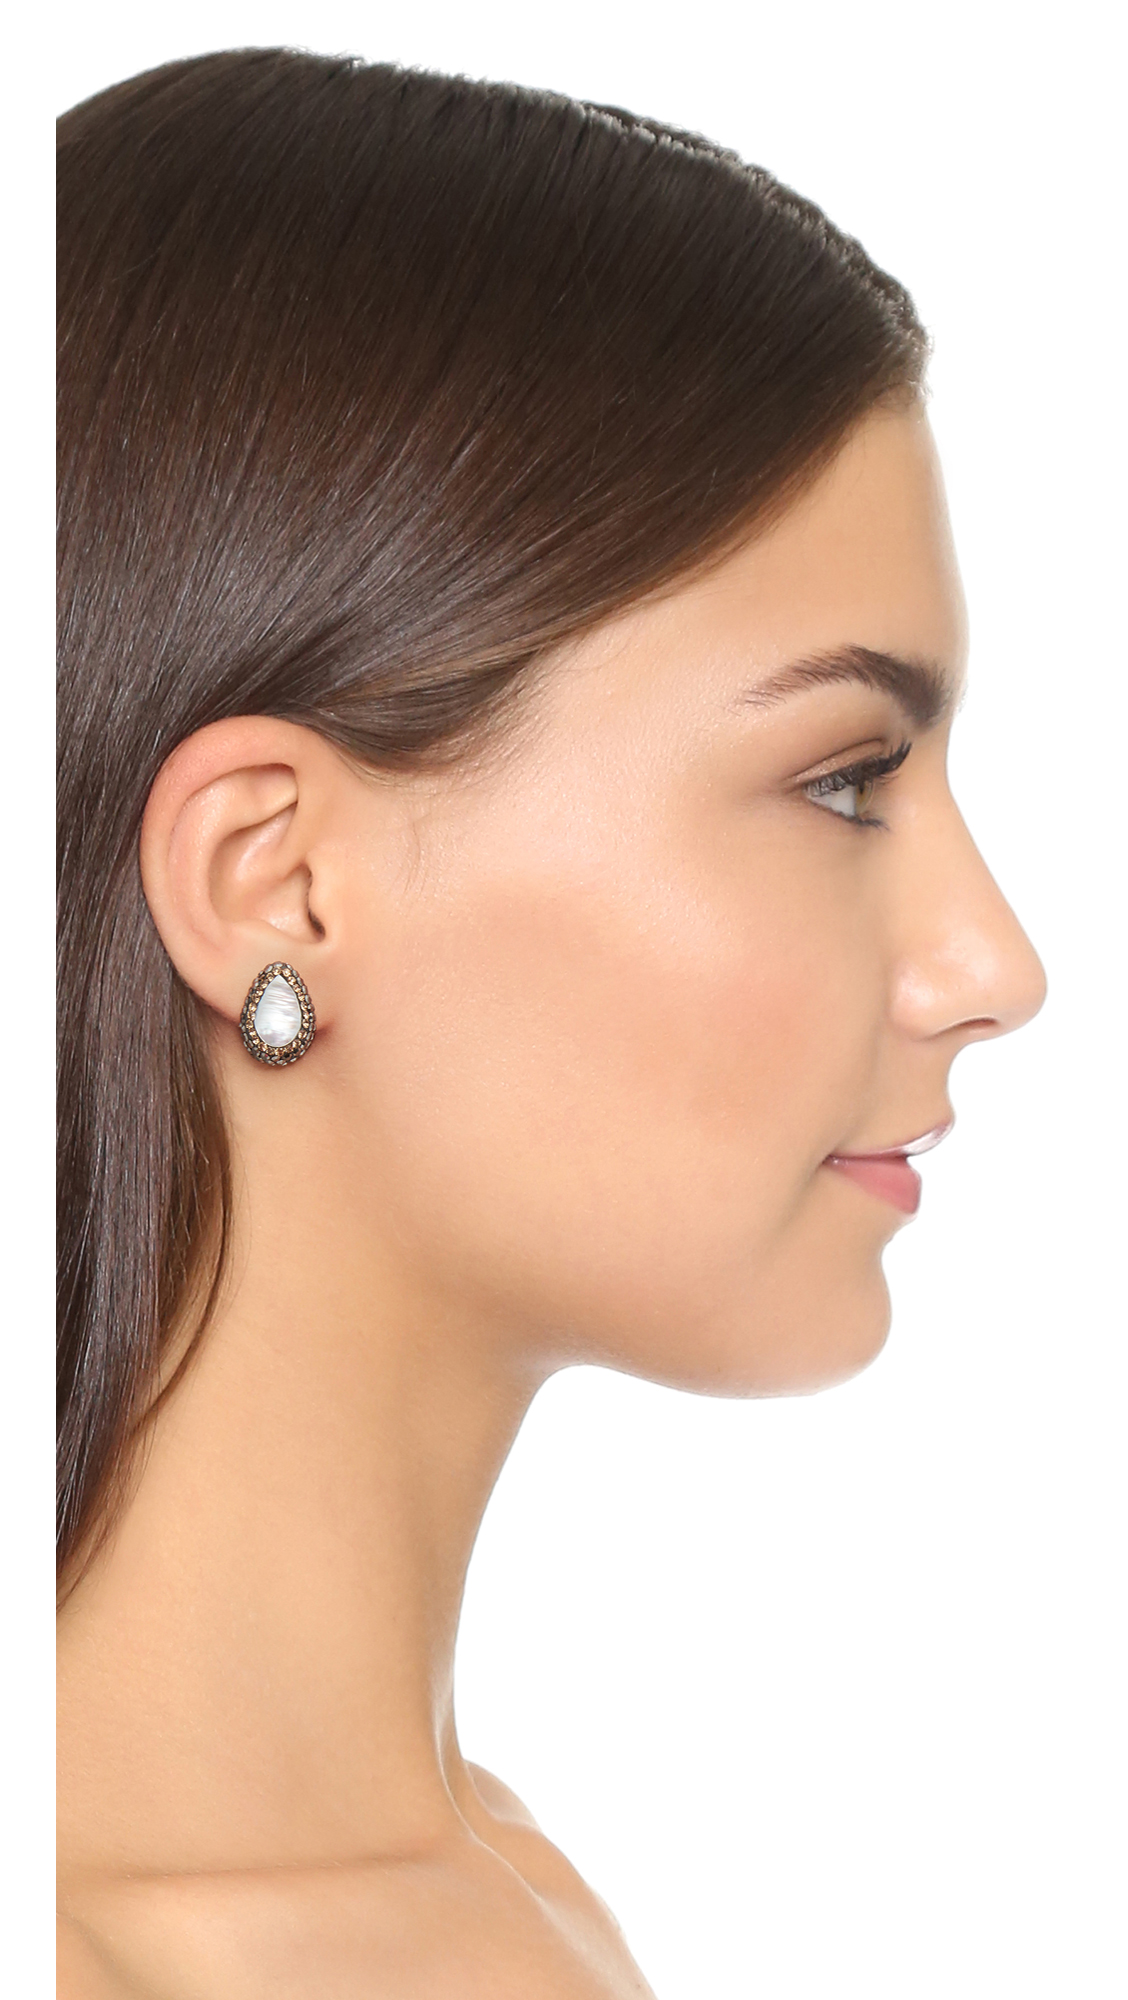 silver earrings sw everyday style bay ij in enchanting bays radiant s